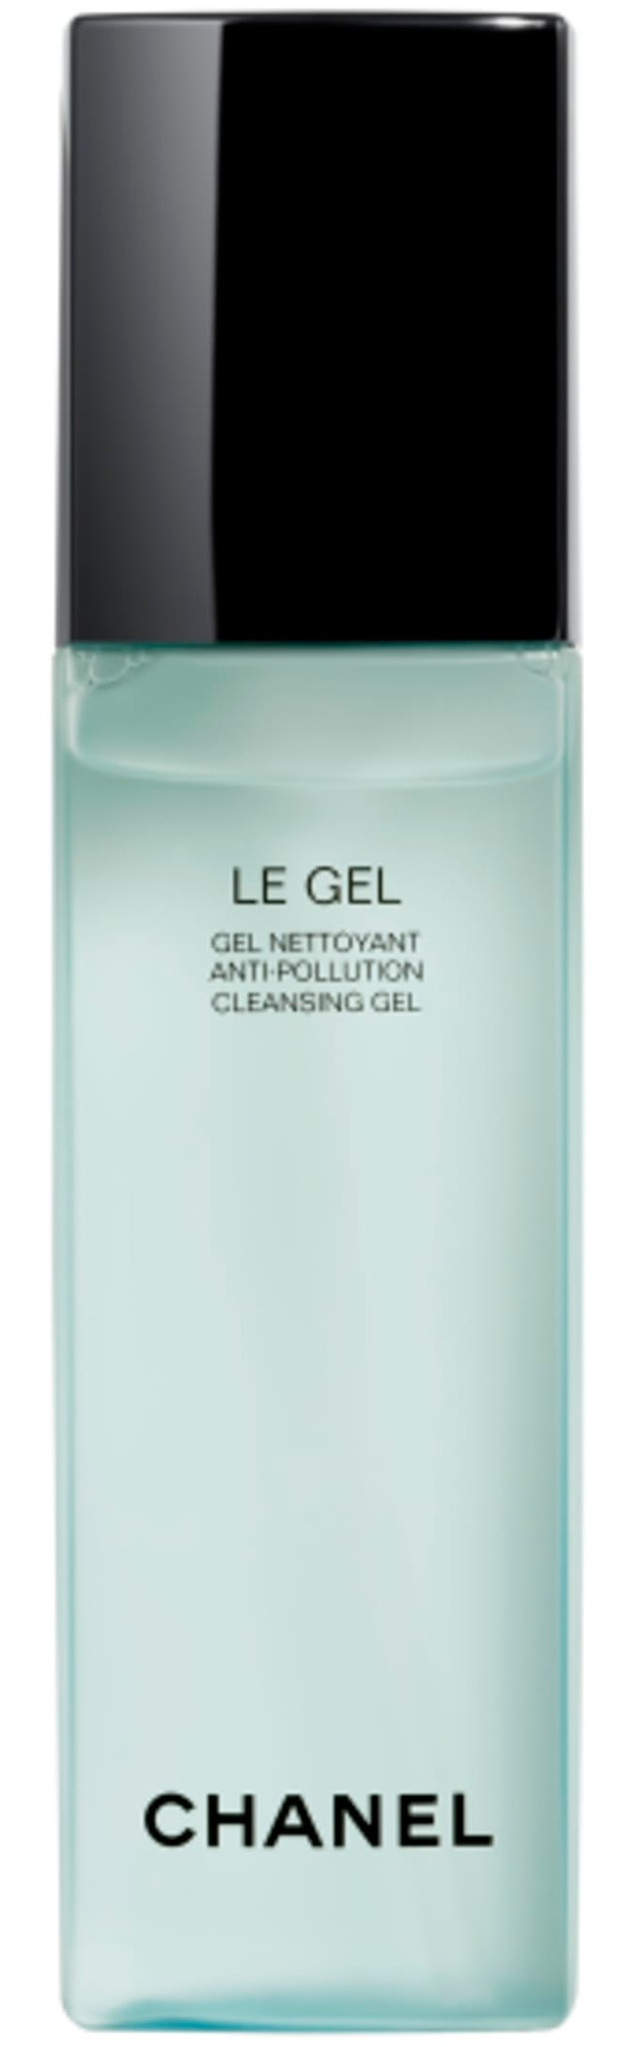 Chanel Anti-Pollution Cleansing Gel